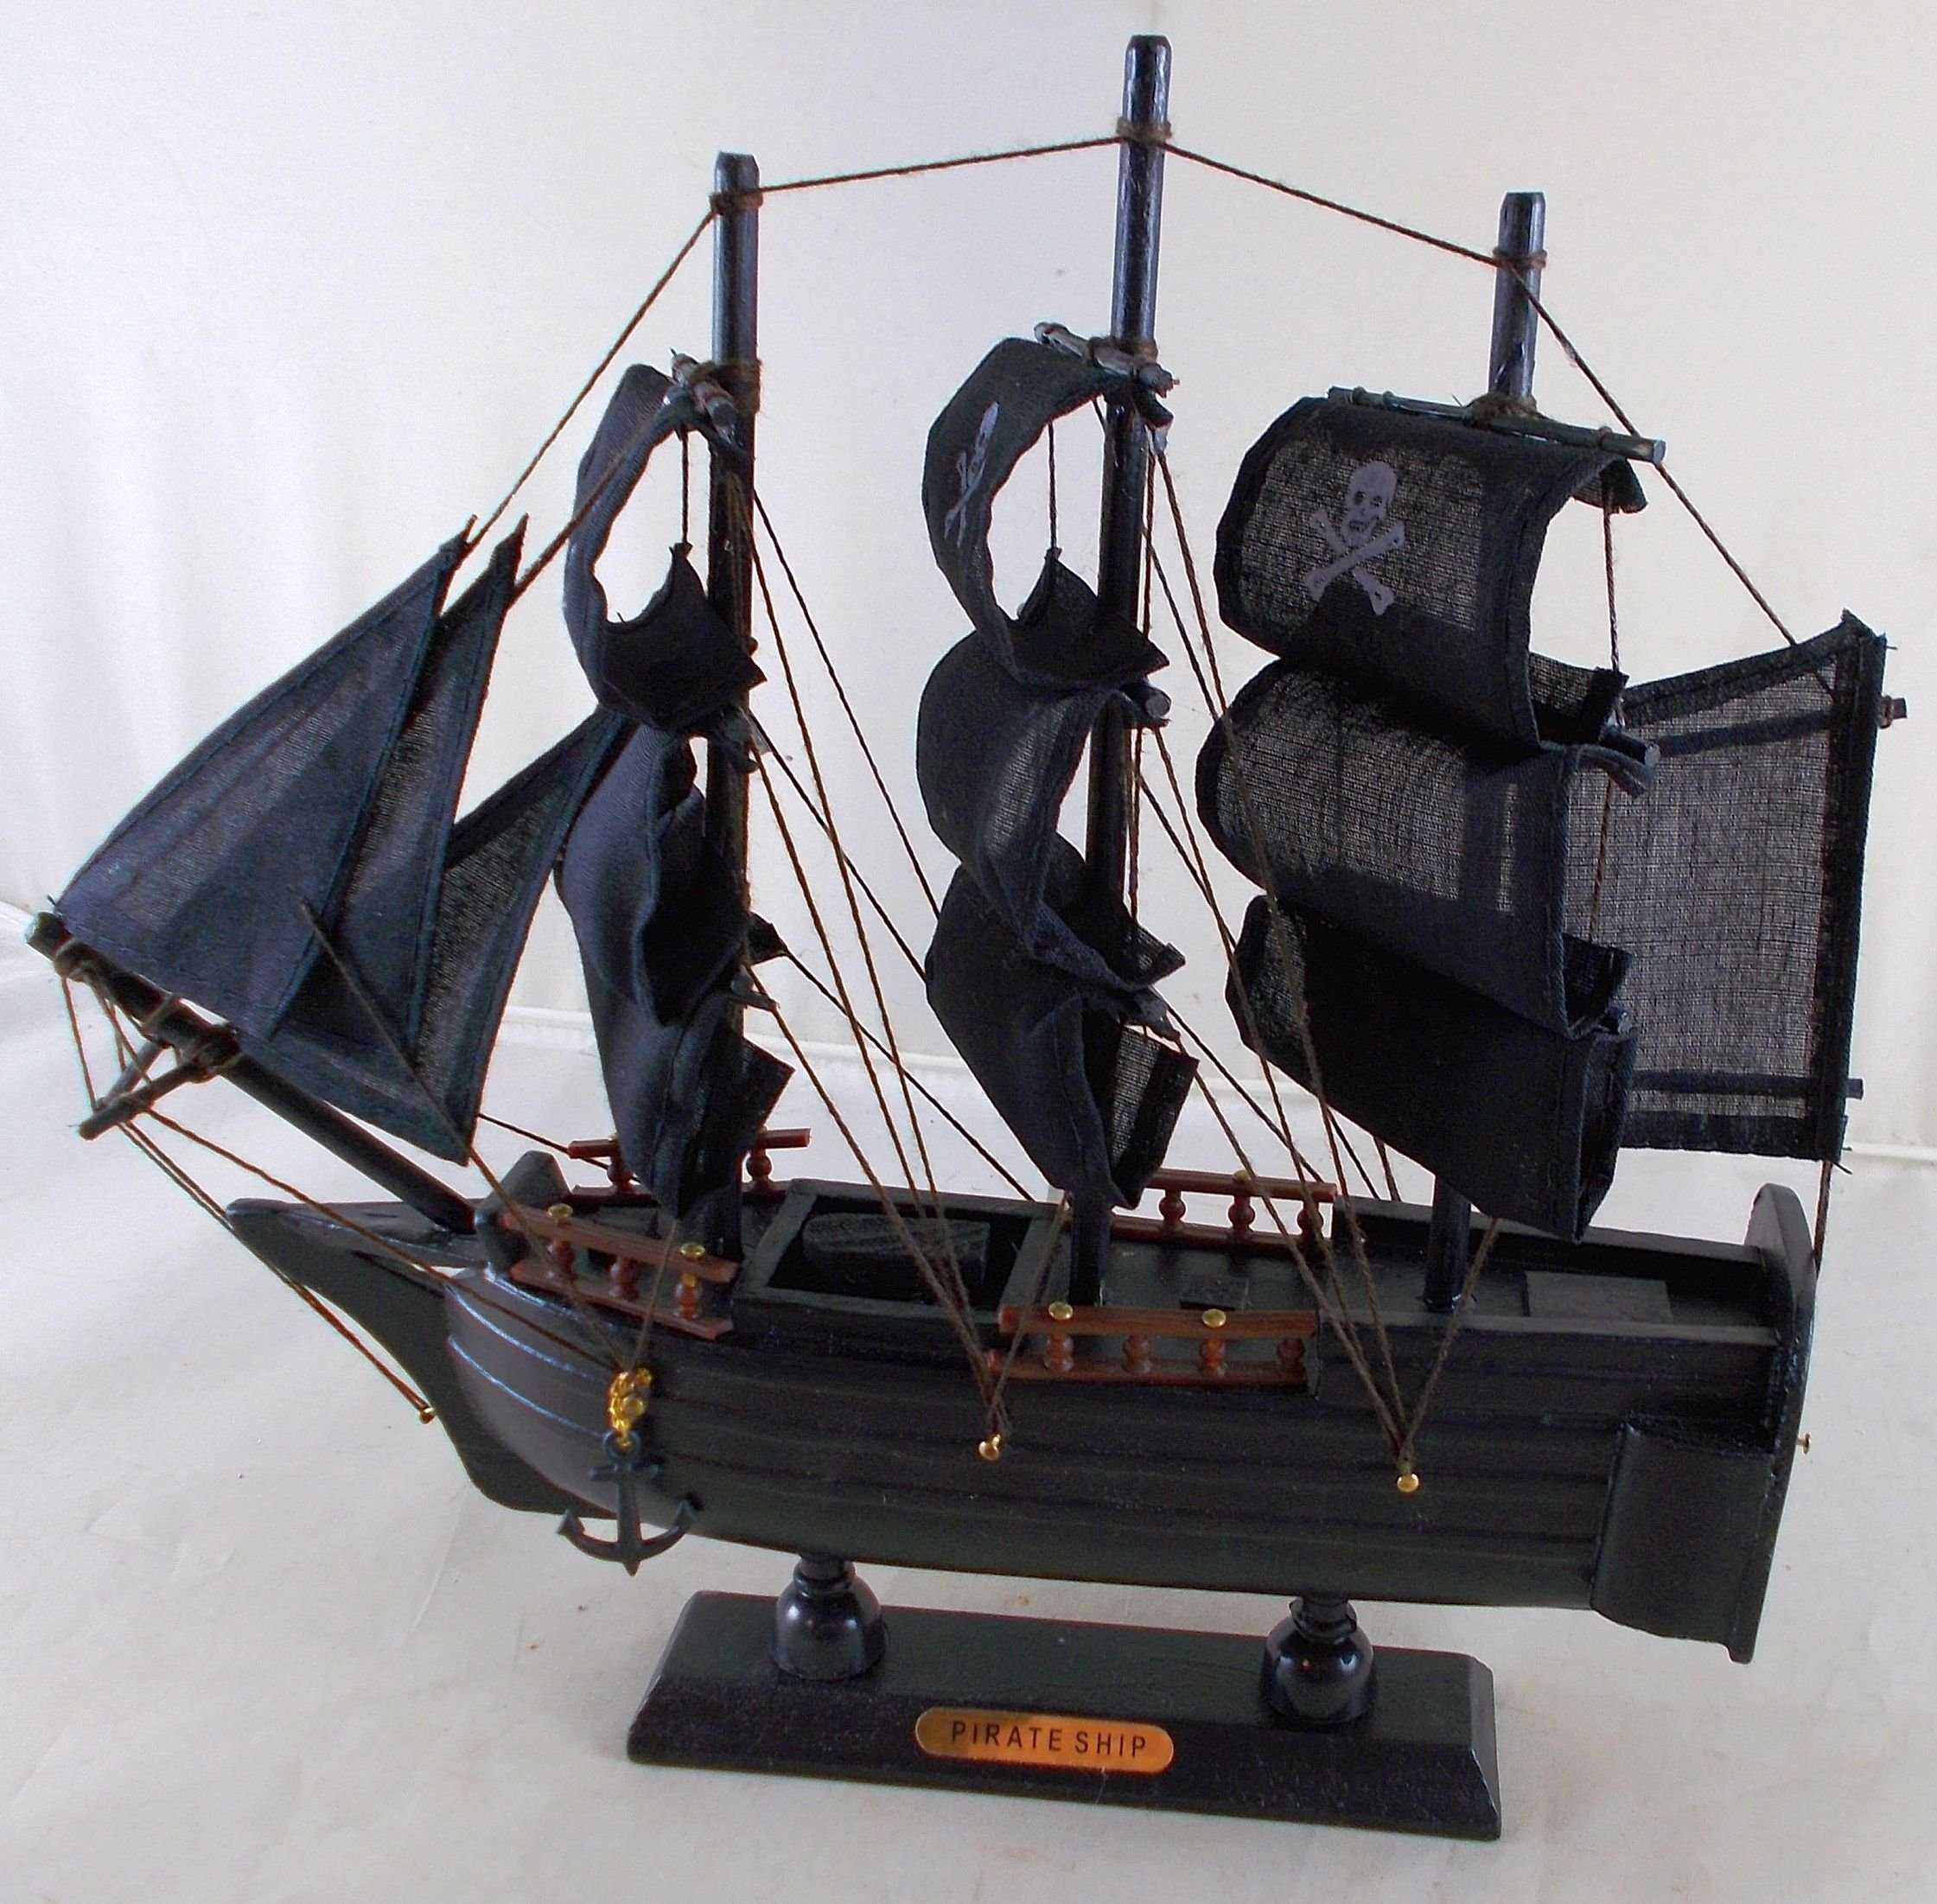 Pirate Ship Wooden Boat Model with Cloth Sails - Fully Assembled